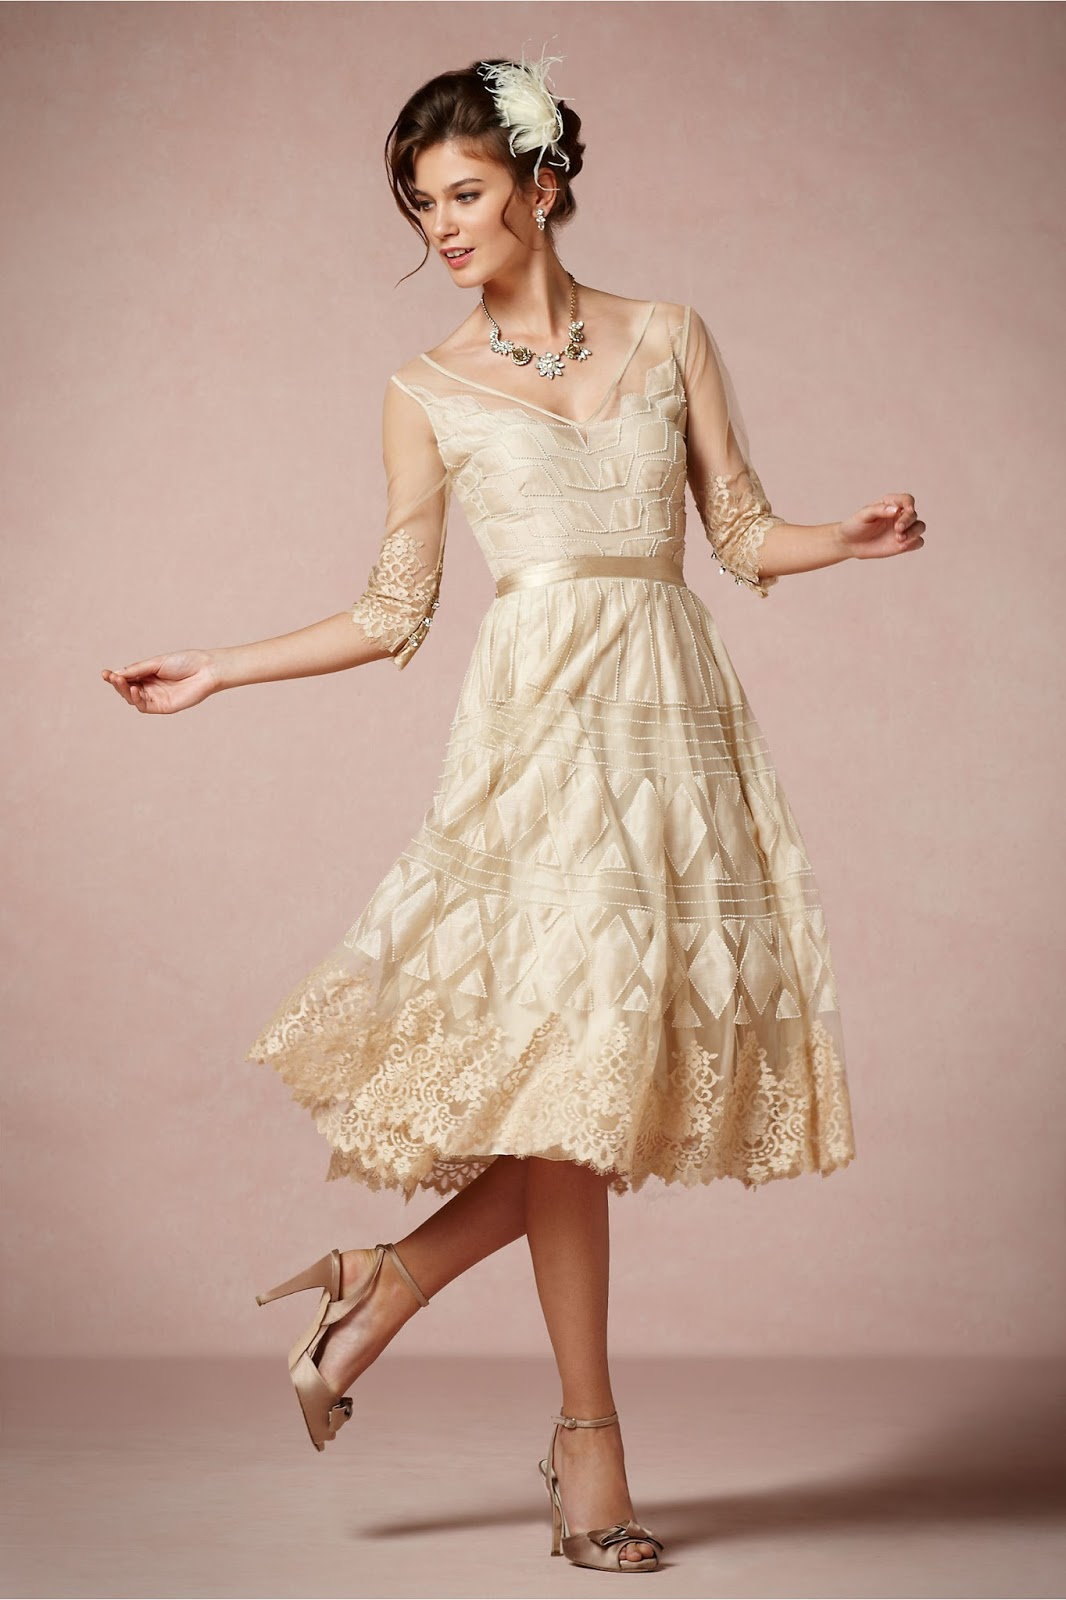 1950s wedding dresses 1950s dress style for Wedding dresses 1950s style